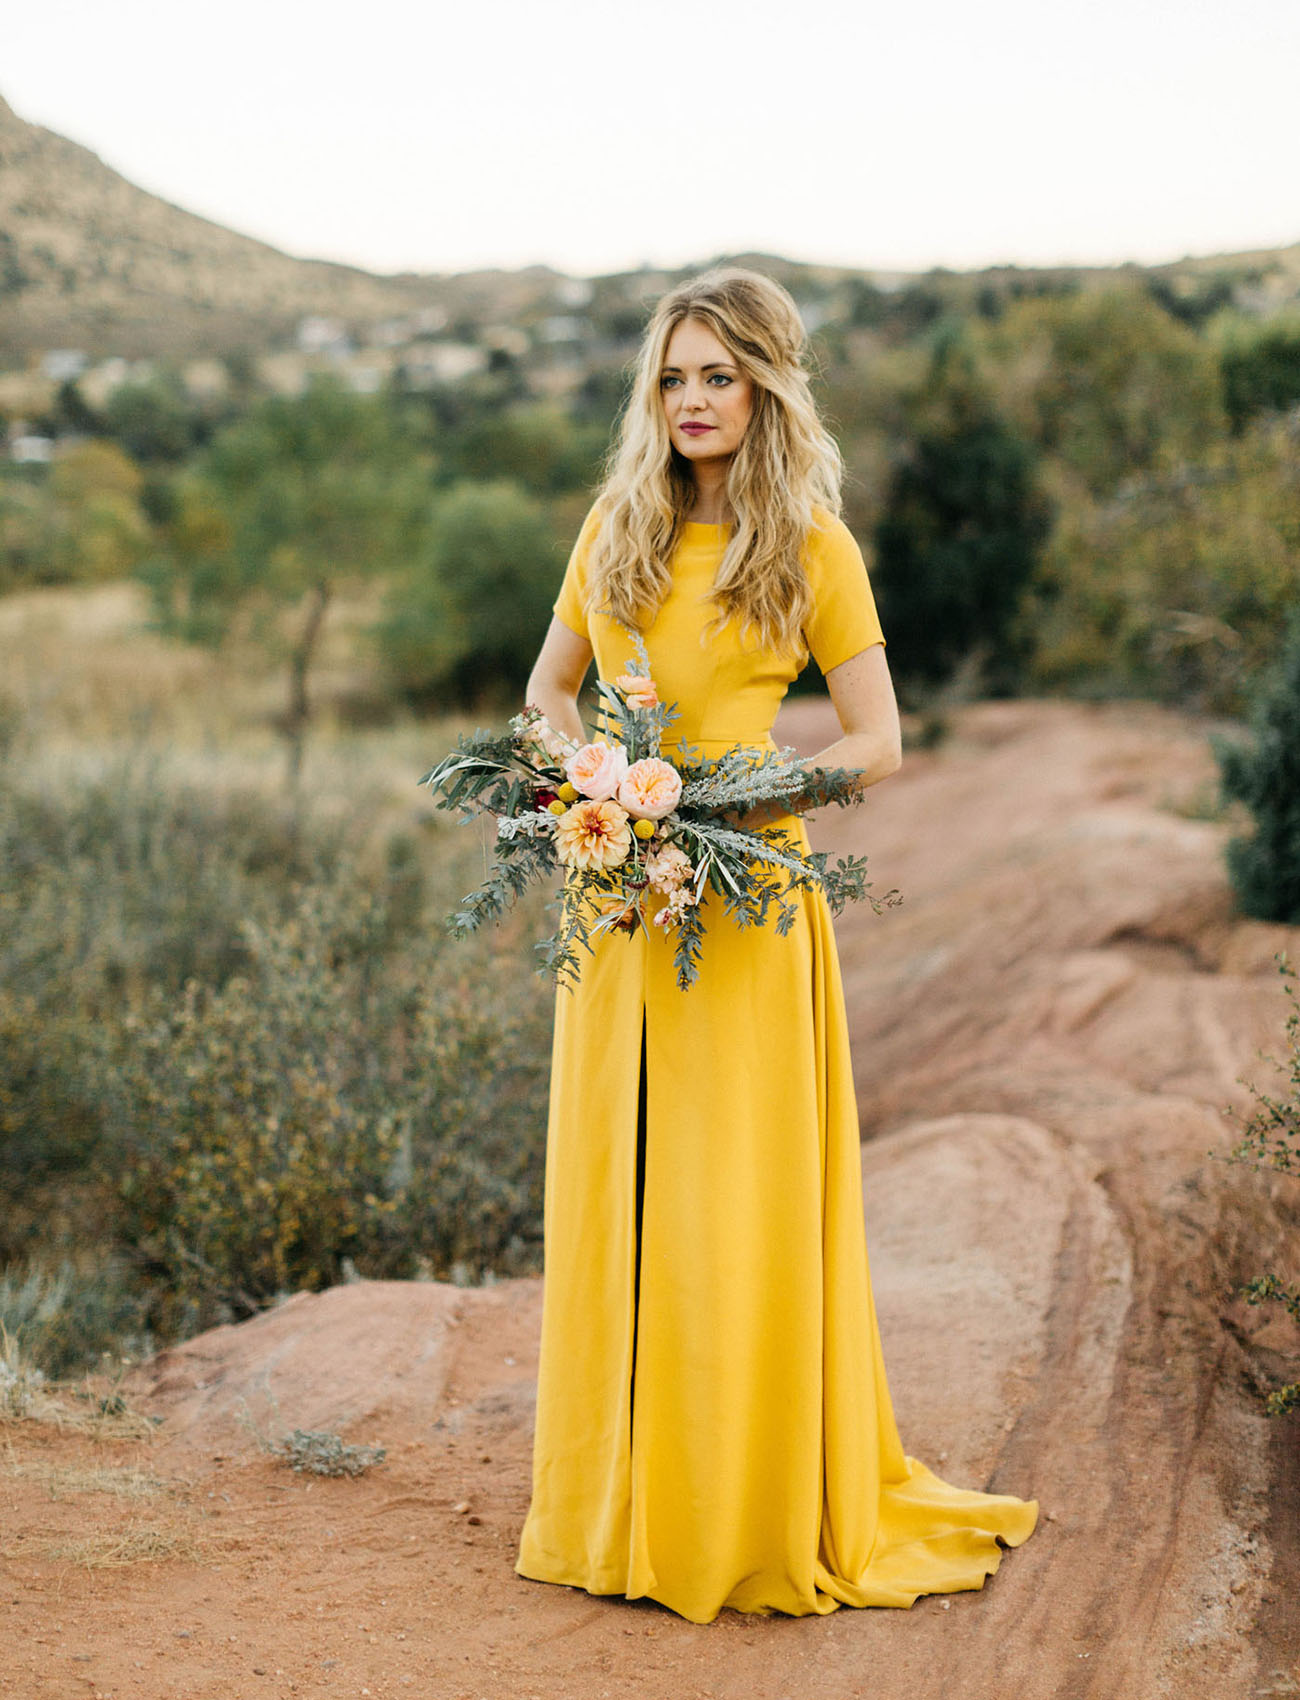 This Bold Sleek Mustard Yellow Wedding Dress